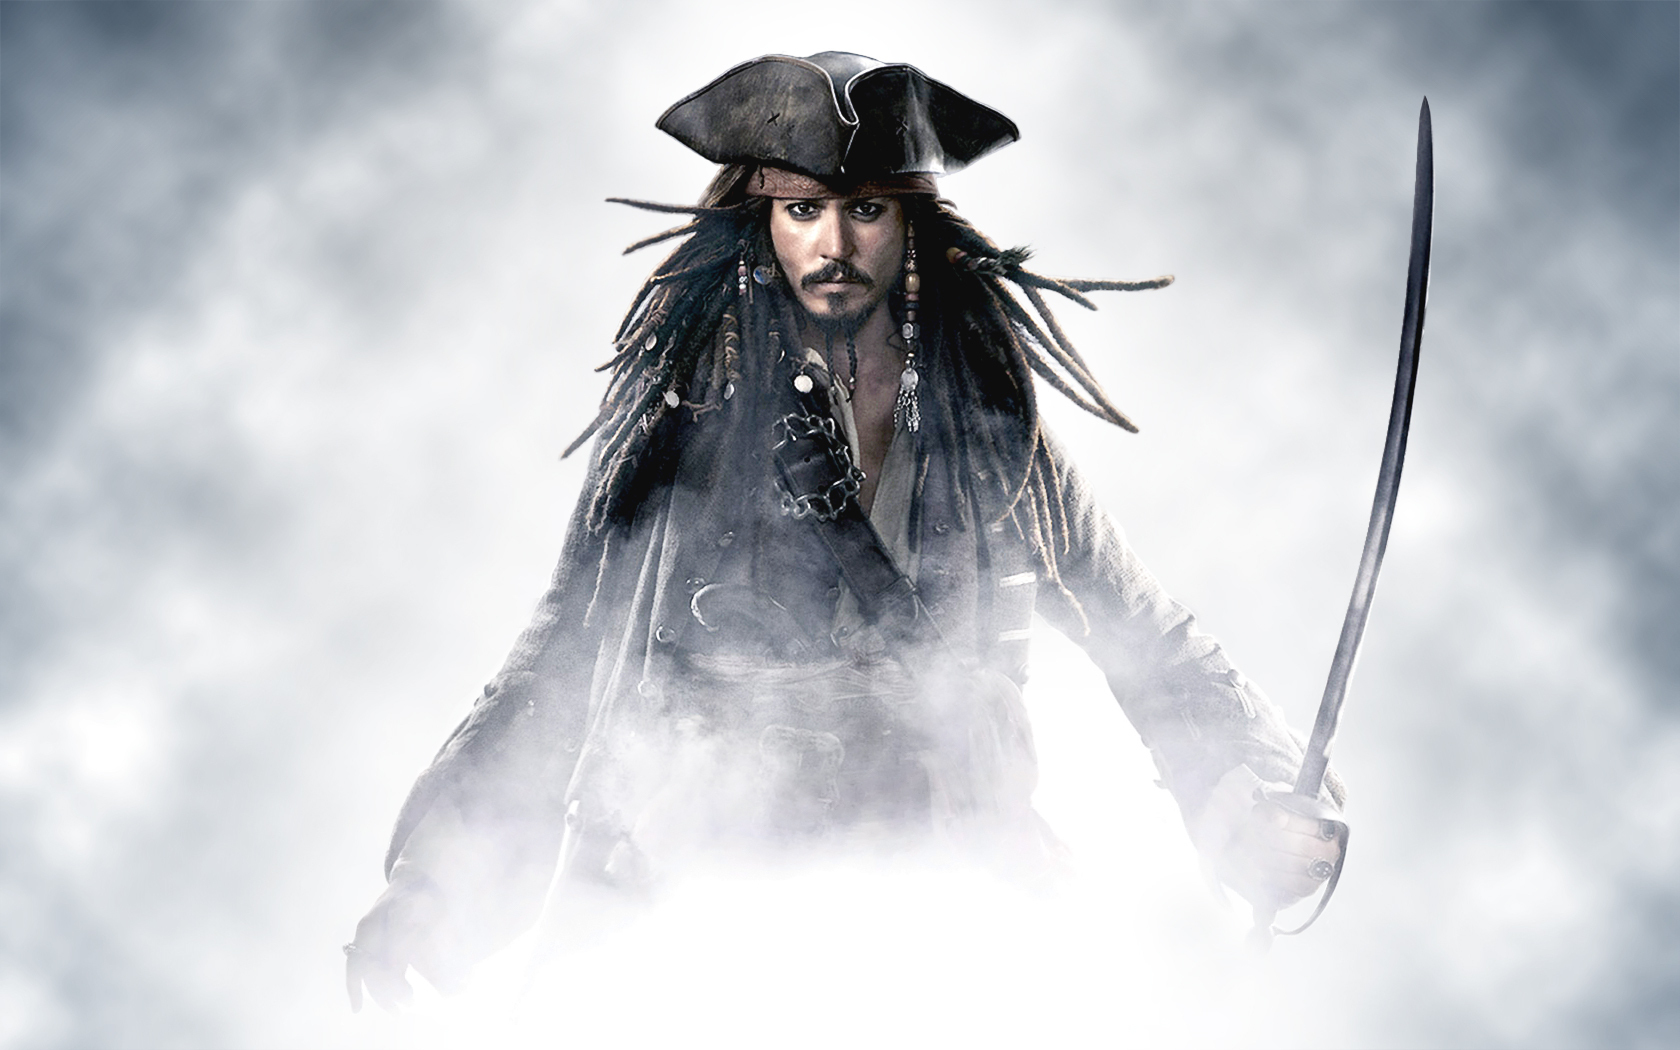 Jack Sparrow Wallpapers High Quality